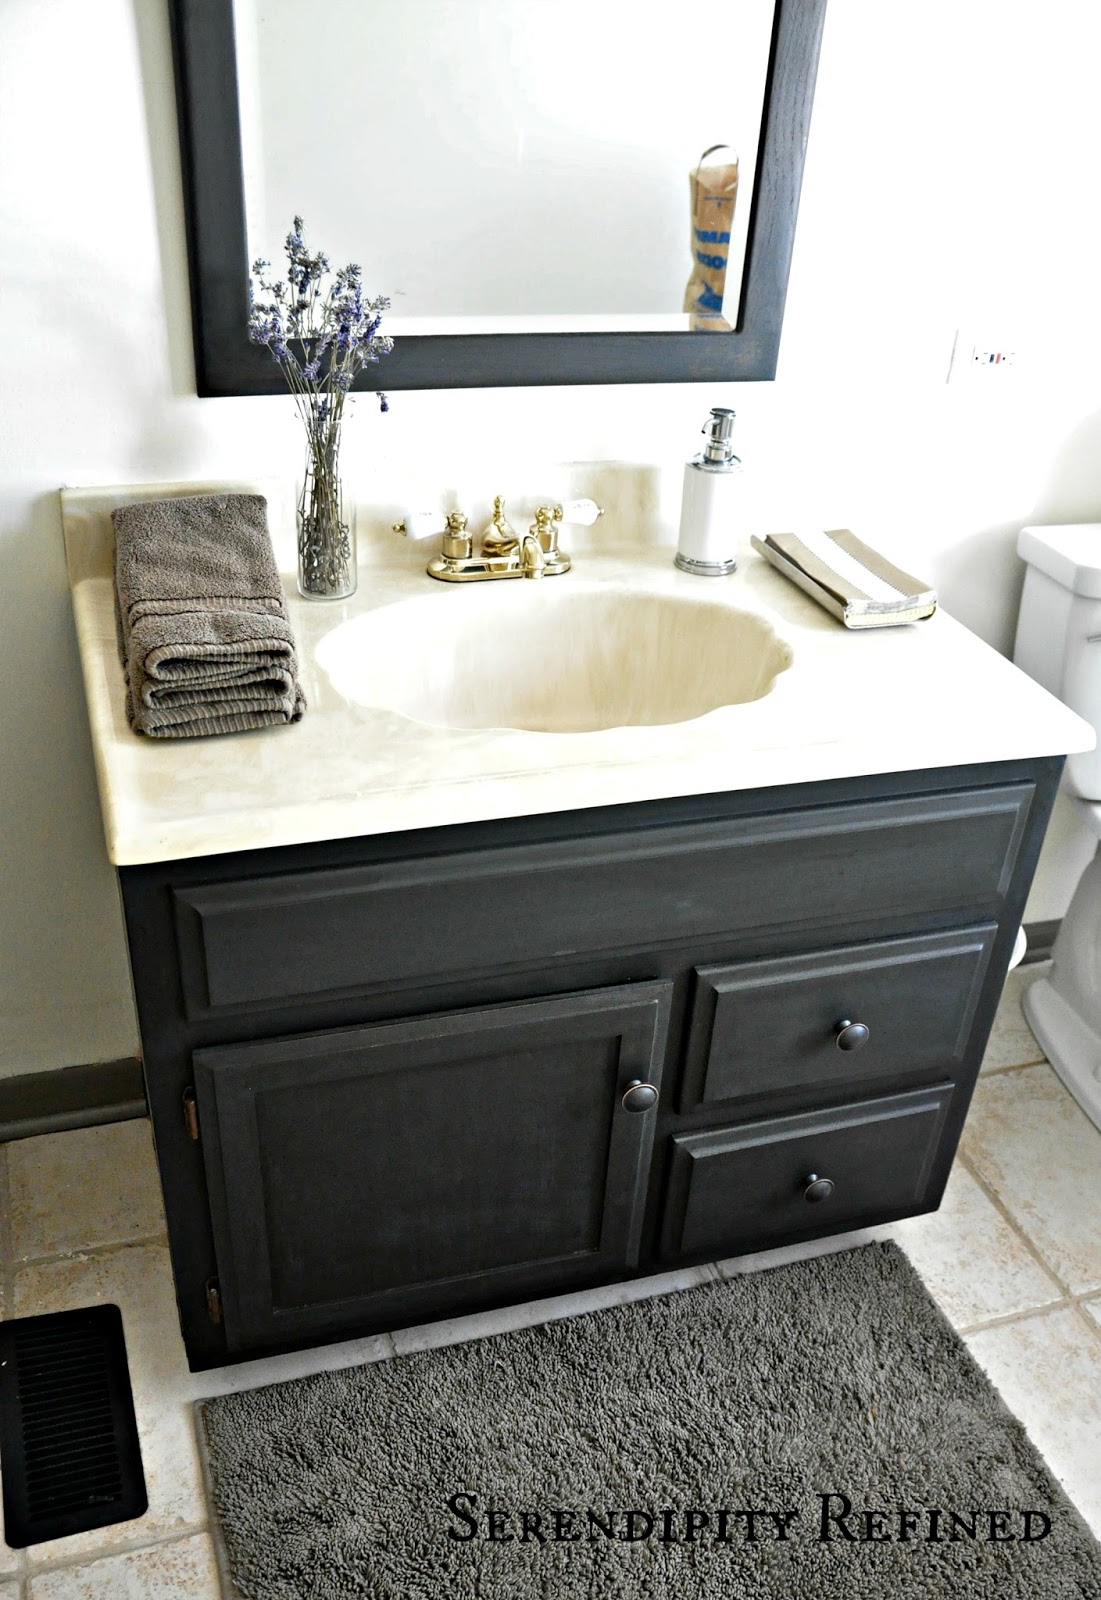 Serendipity Refined Blog: How To Update Oak And Brass Bathroom Fixtures  With Spray Paint And Chalk Paint